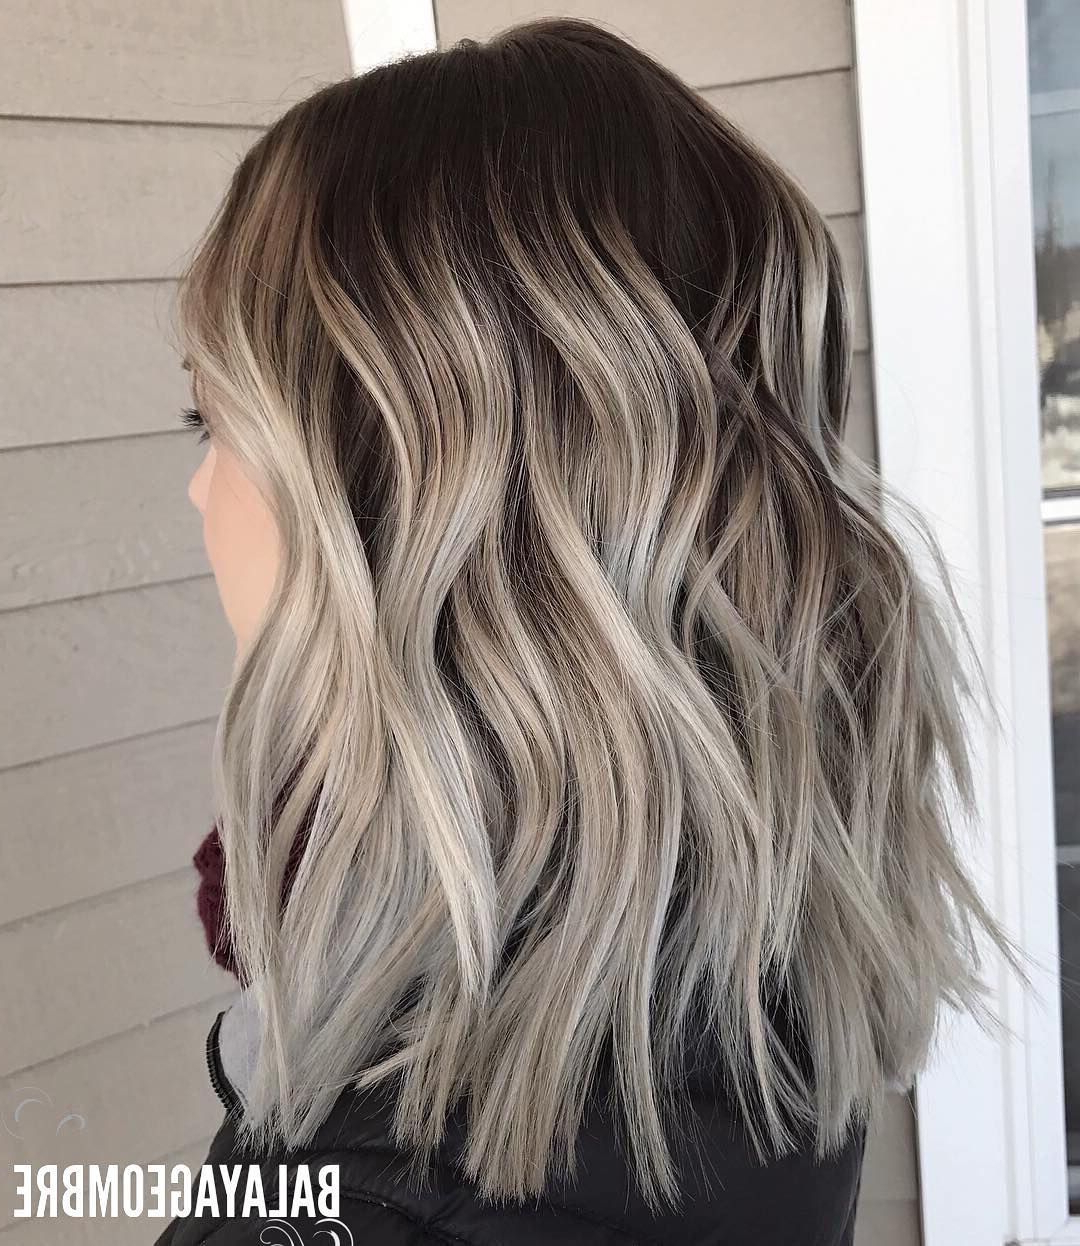 10 Medium Layered Hairstyles In Beige, Brown & Ash Blonde With Regard To Well Liked Mid Length Layered Ash Blonde Hairstyles (View 2 of 20)